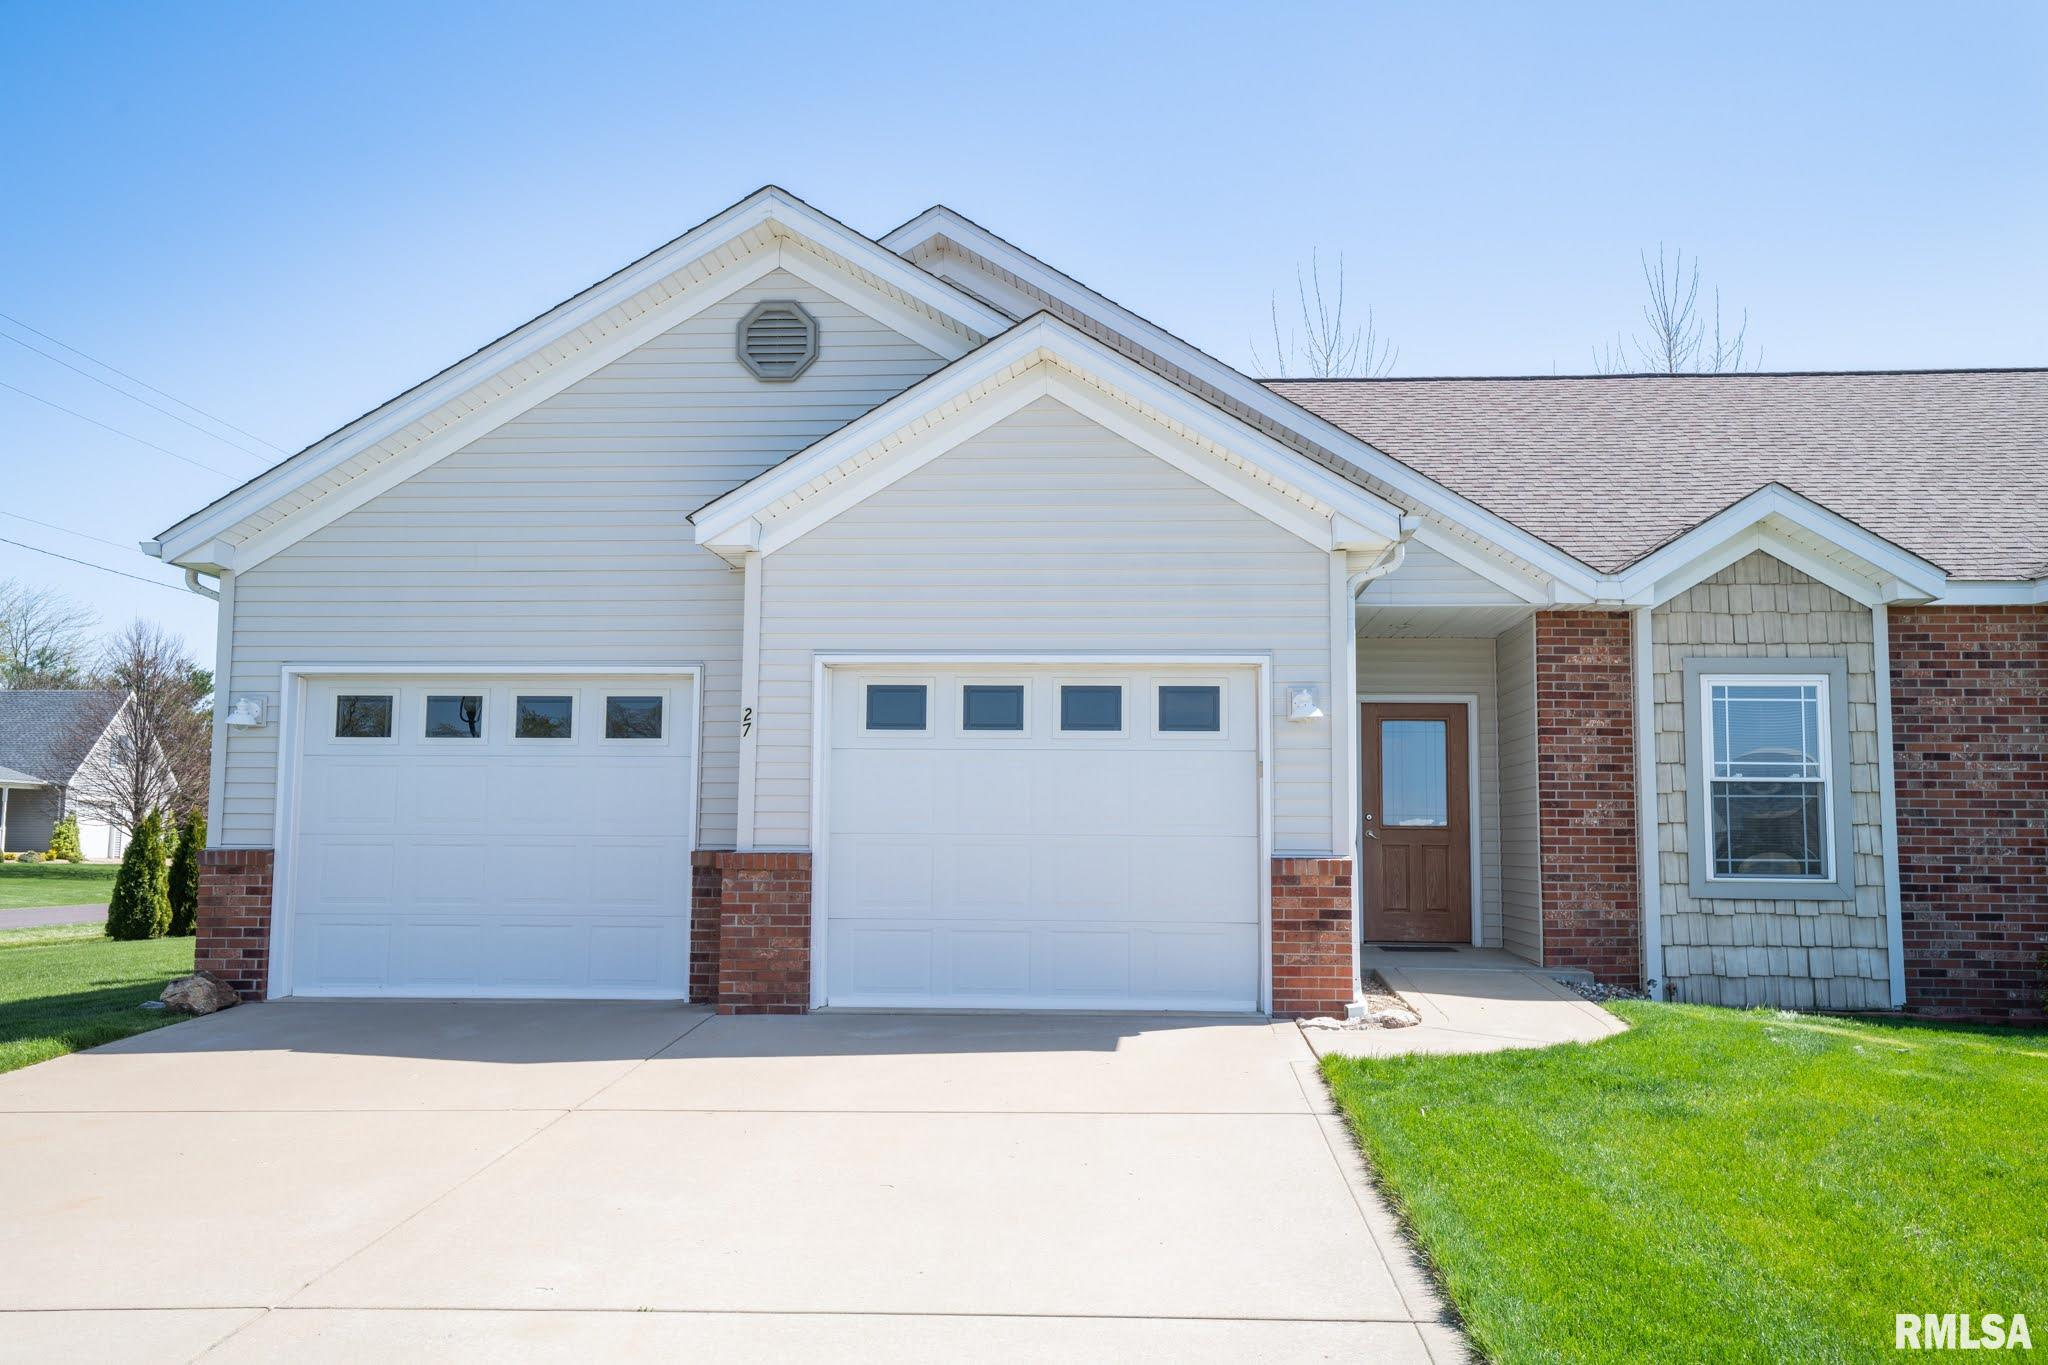 27 CANDLEWICK Property Photo - Minier, IL real estate listing